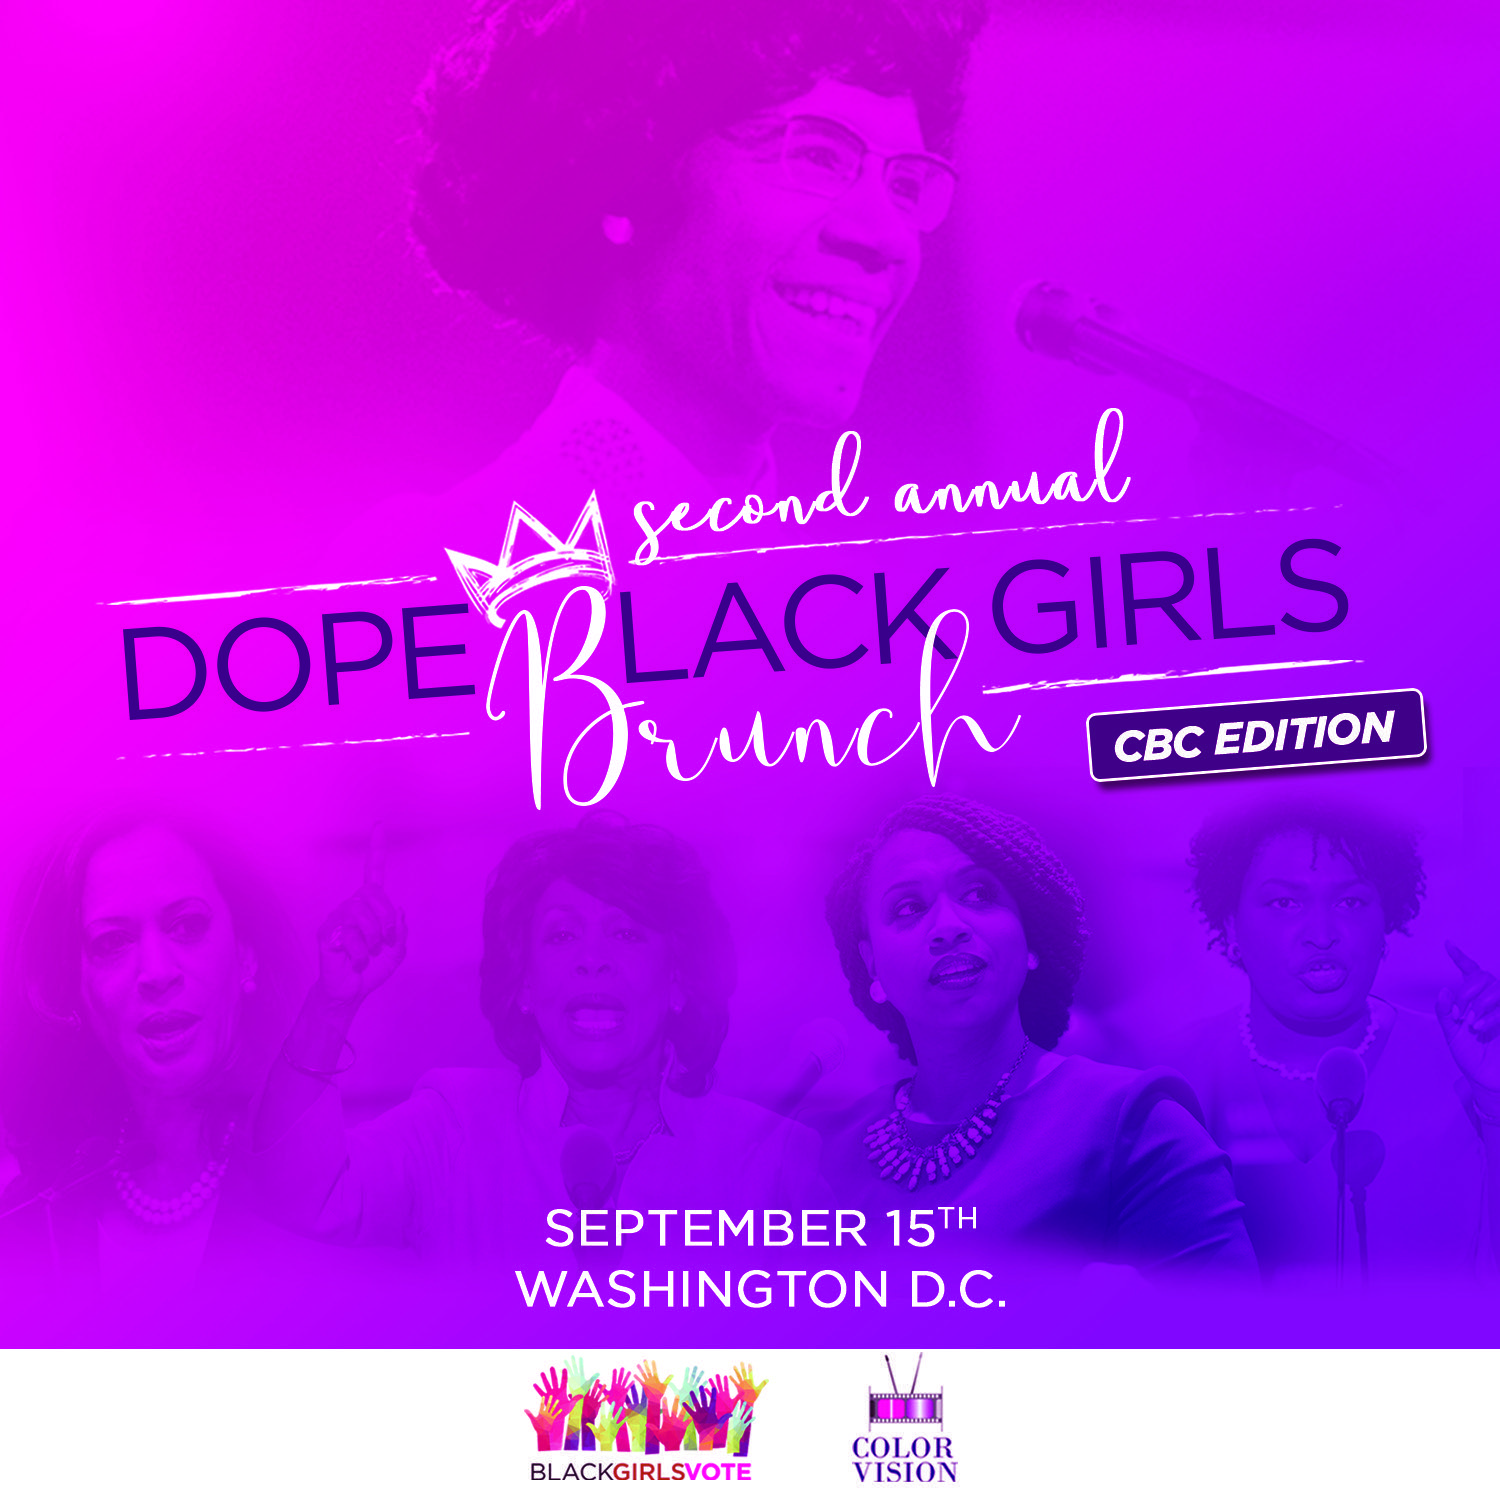 Dope Black Girls Brunch CBC Edition 2019